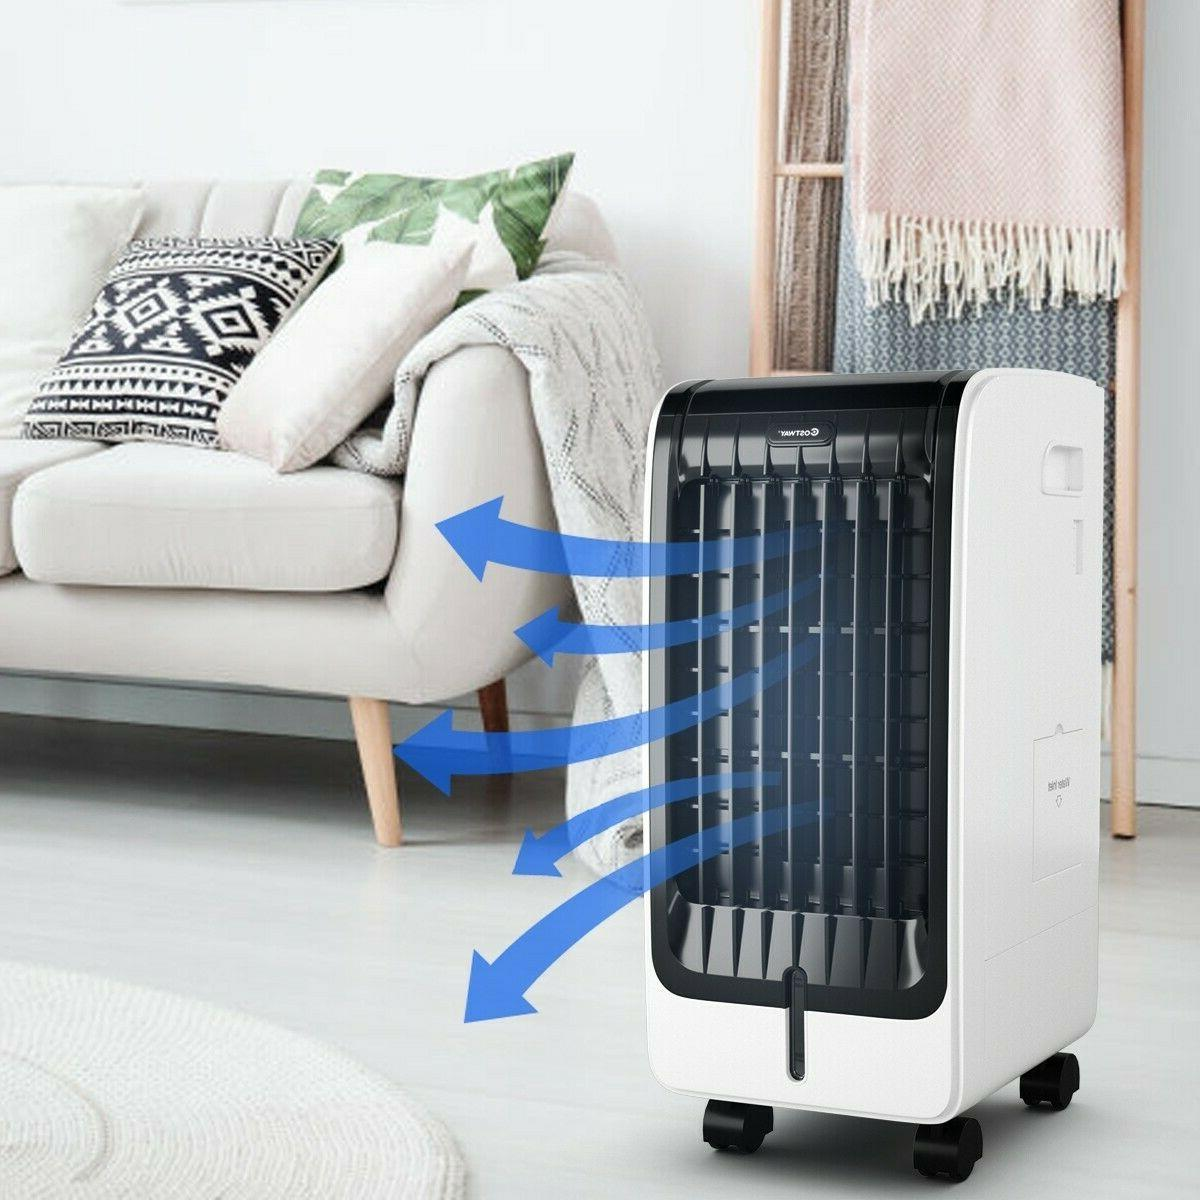 Evaporative Portable Cooler with Remote Control